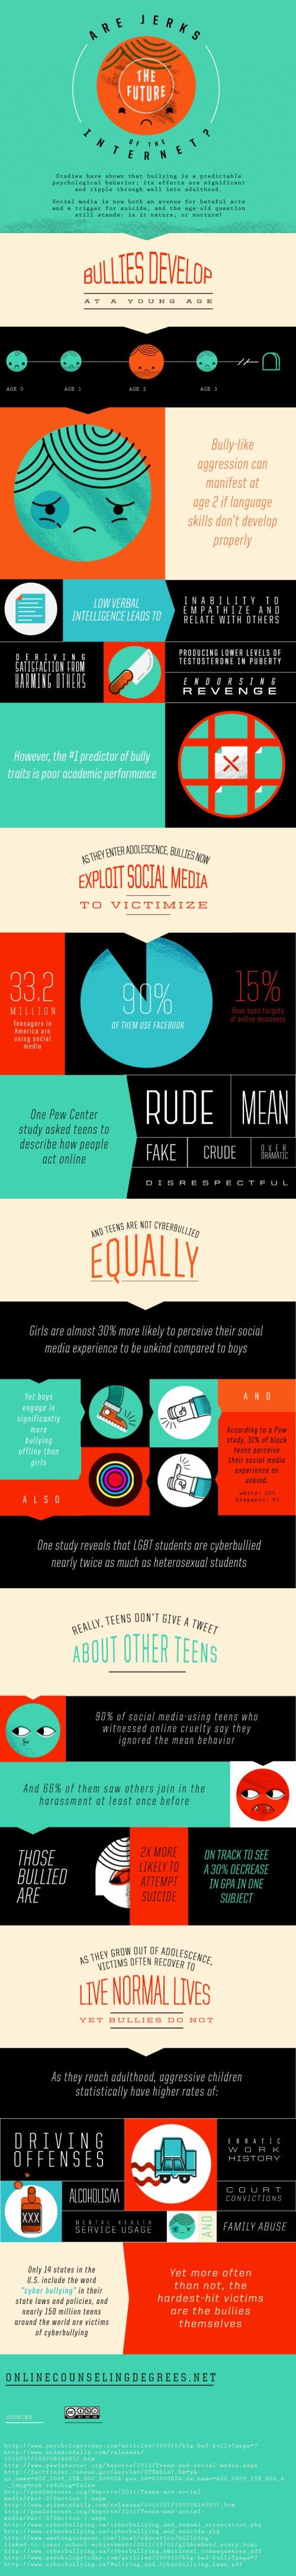 Cyber Bullying and Social Media